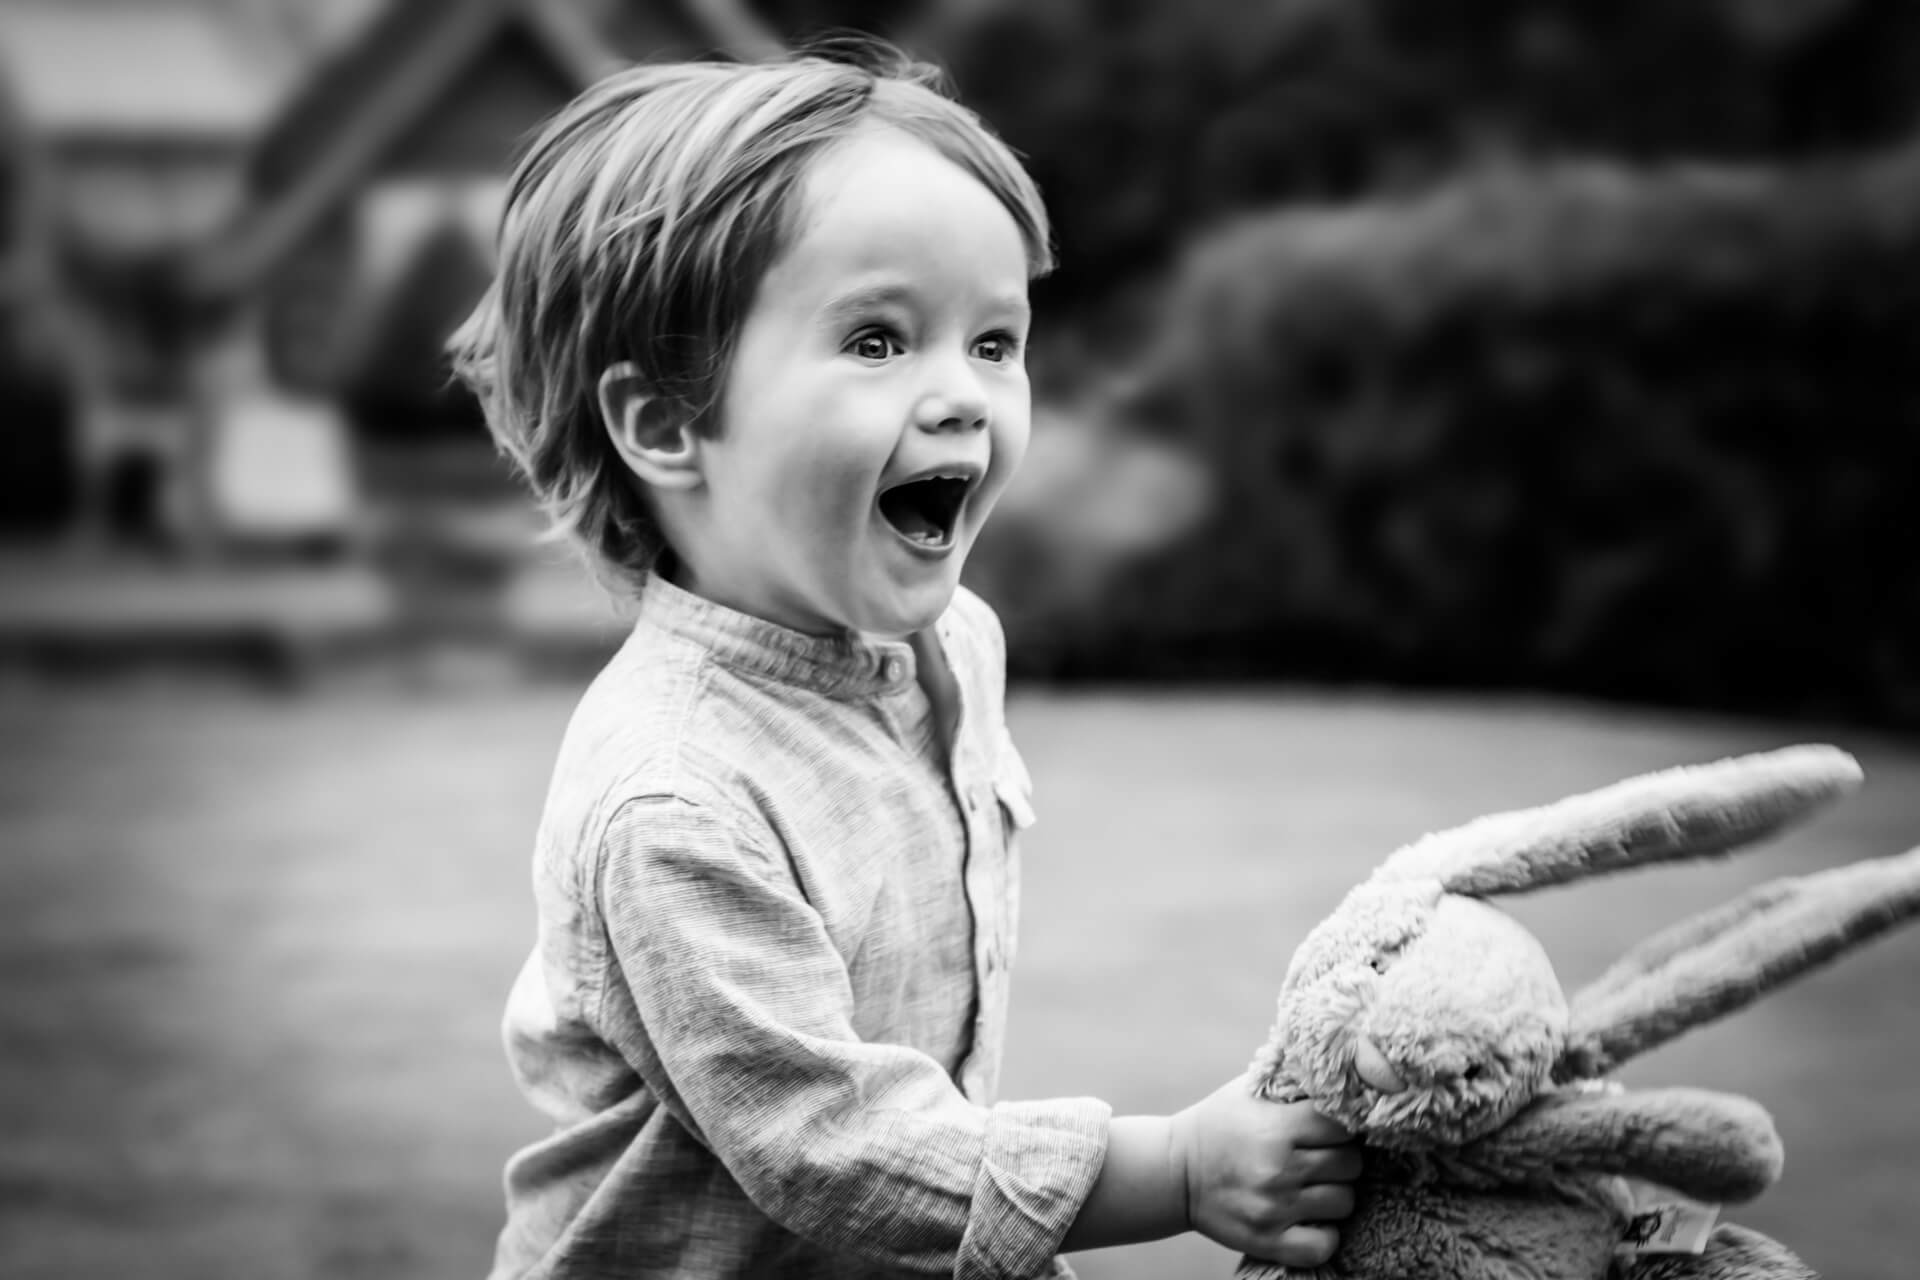 yorkshire portrait photographer - small boy running and laughing